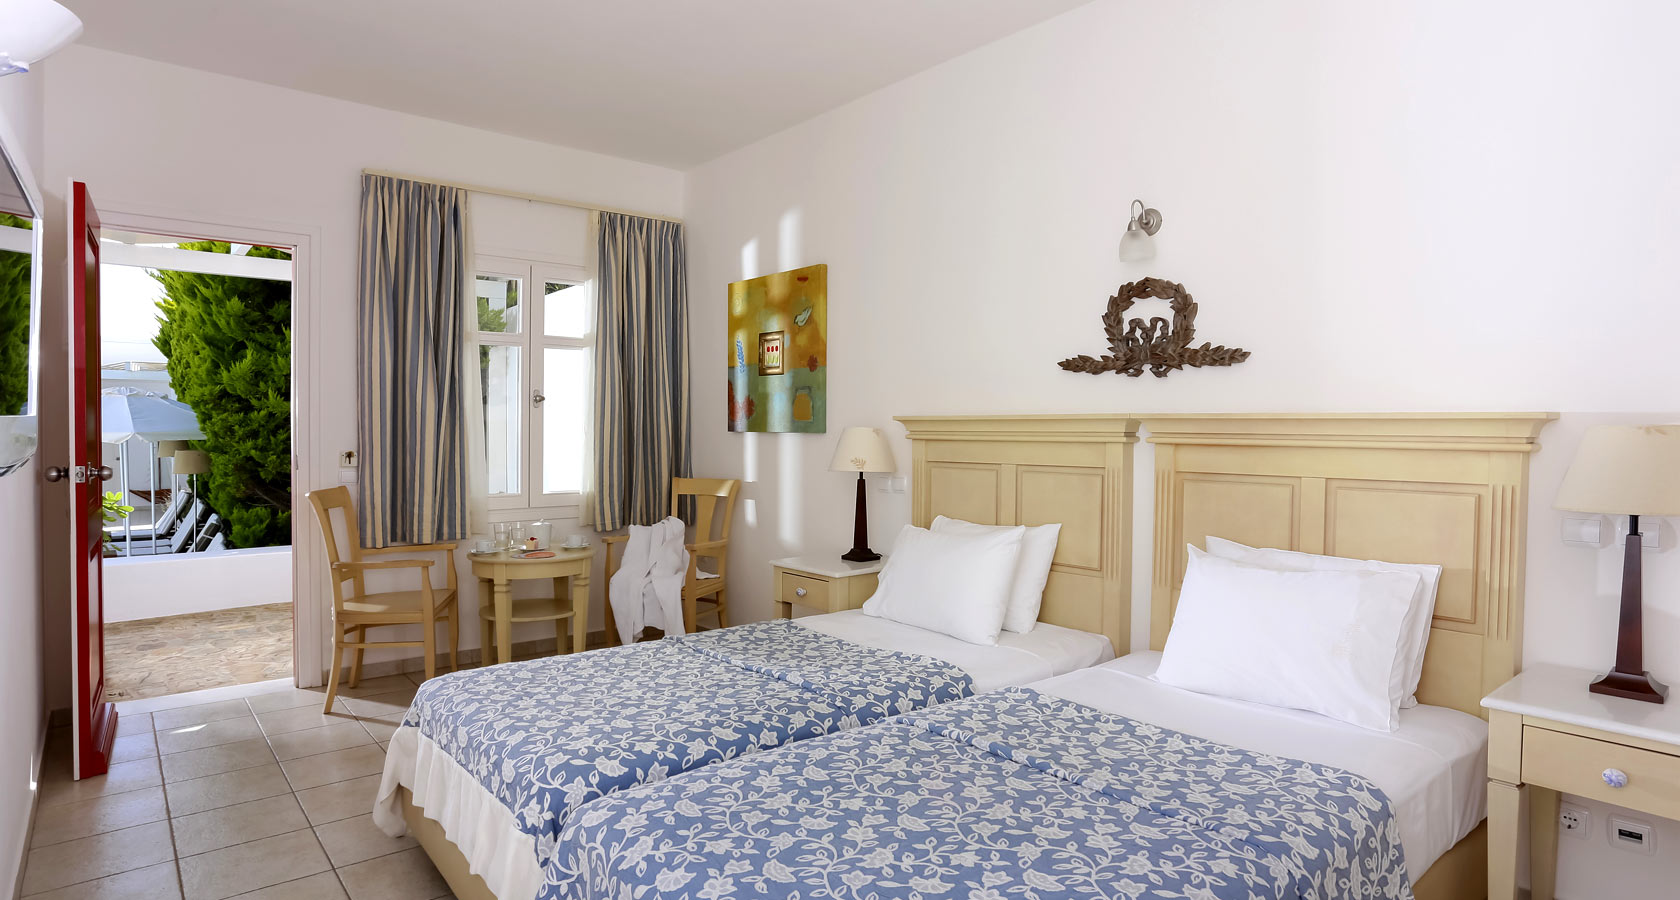 Stelia Mare Hotel in Paros – Double Room